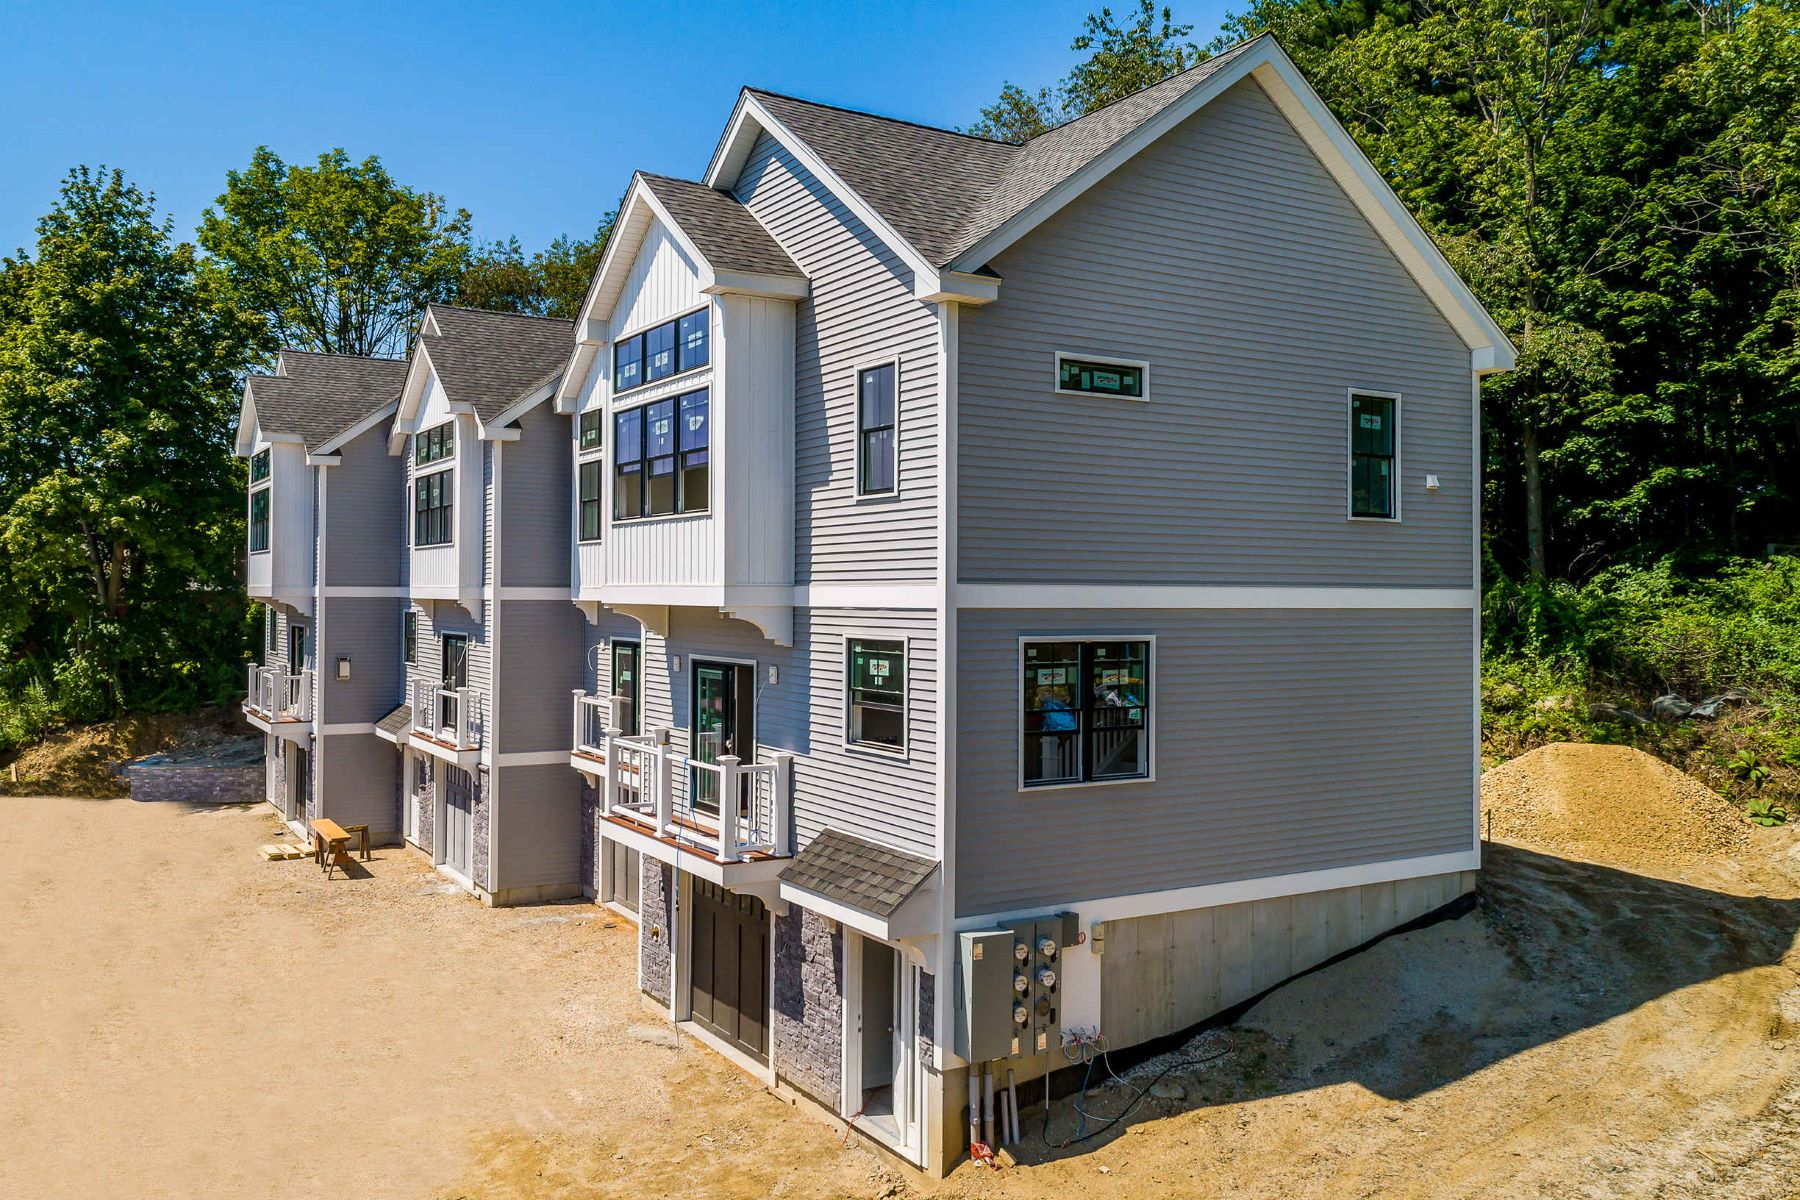 Condominiums for Sale at Newly Constructed Condominium in Kittery Foreside 12 Bridge Street Unit 1 Kittery, Maine 03904 United States